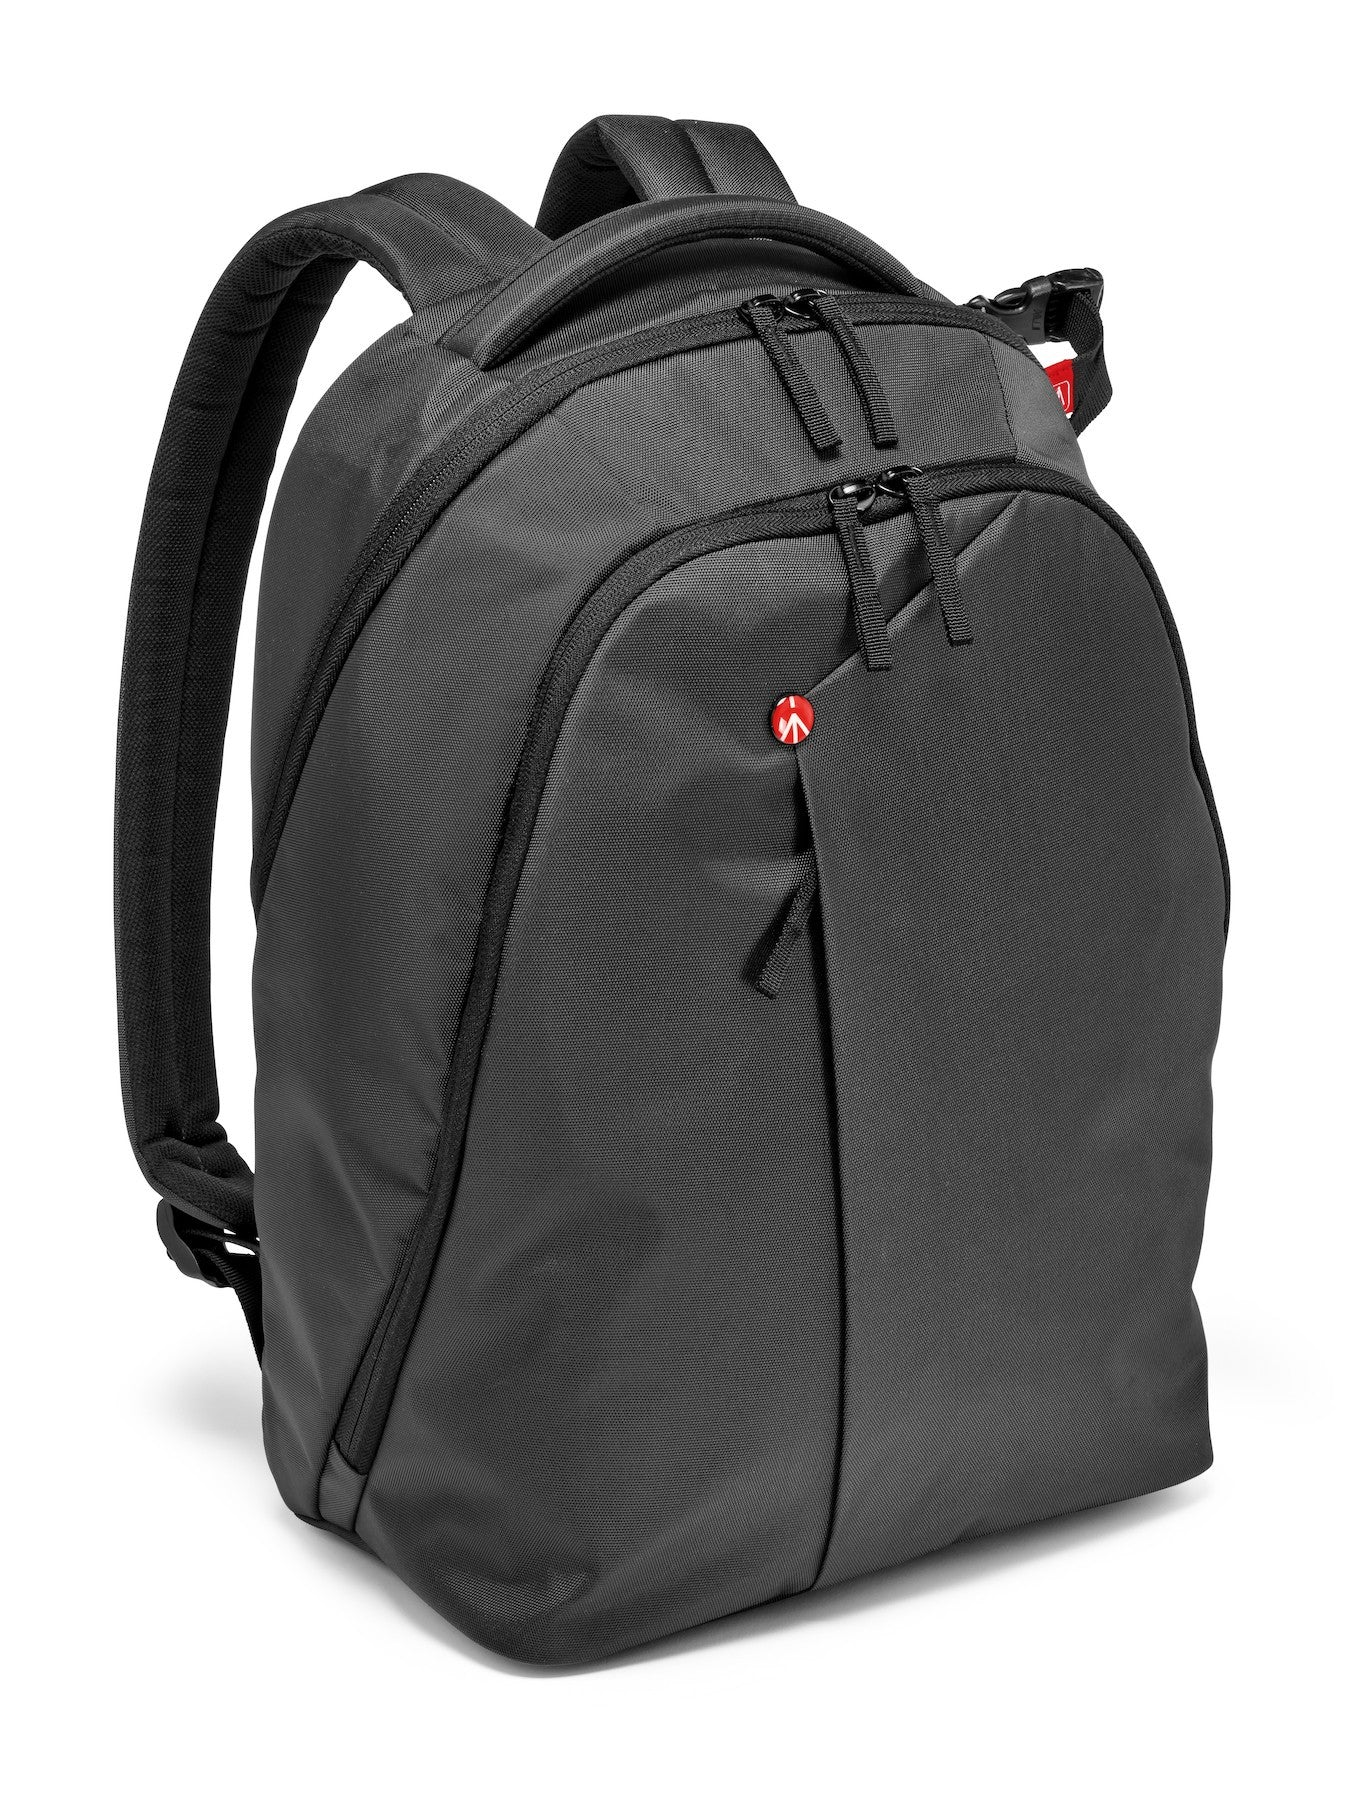 Manfrotto MB NX-BP-VGY Camera and Laptop Backpack